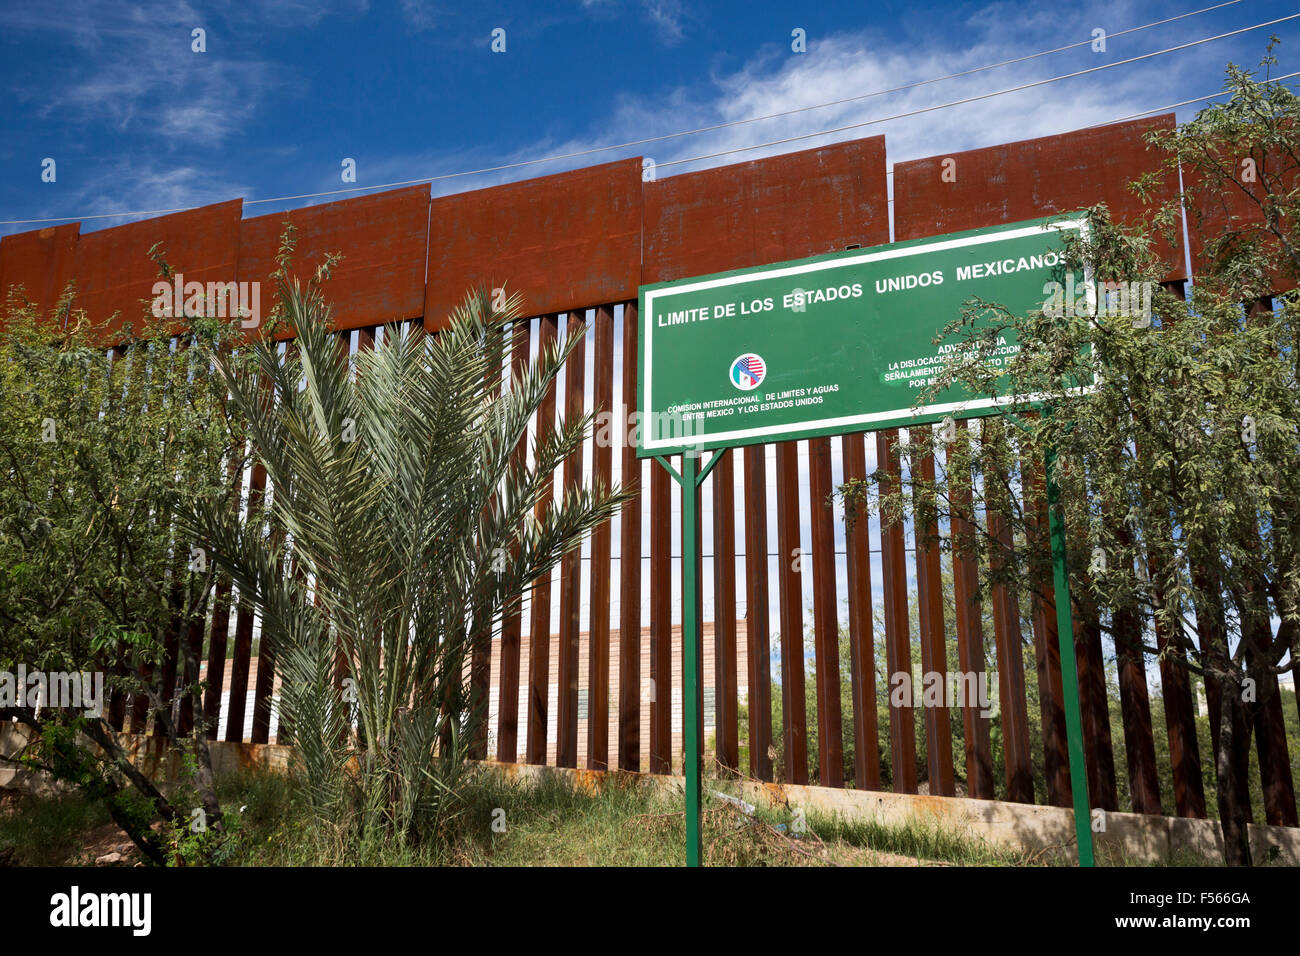 Nogales, Sonora Mexico - A boundary marker on the Mexican side of the fence that separates the United States and - Stock Image